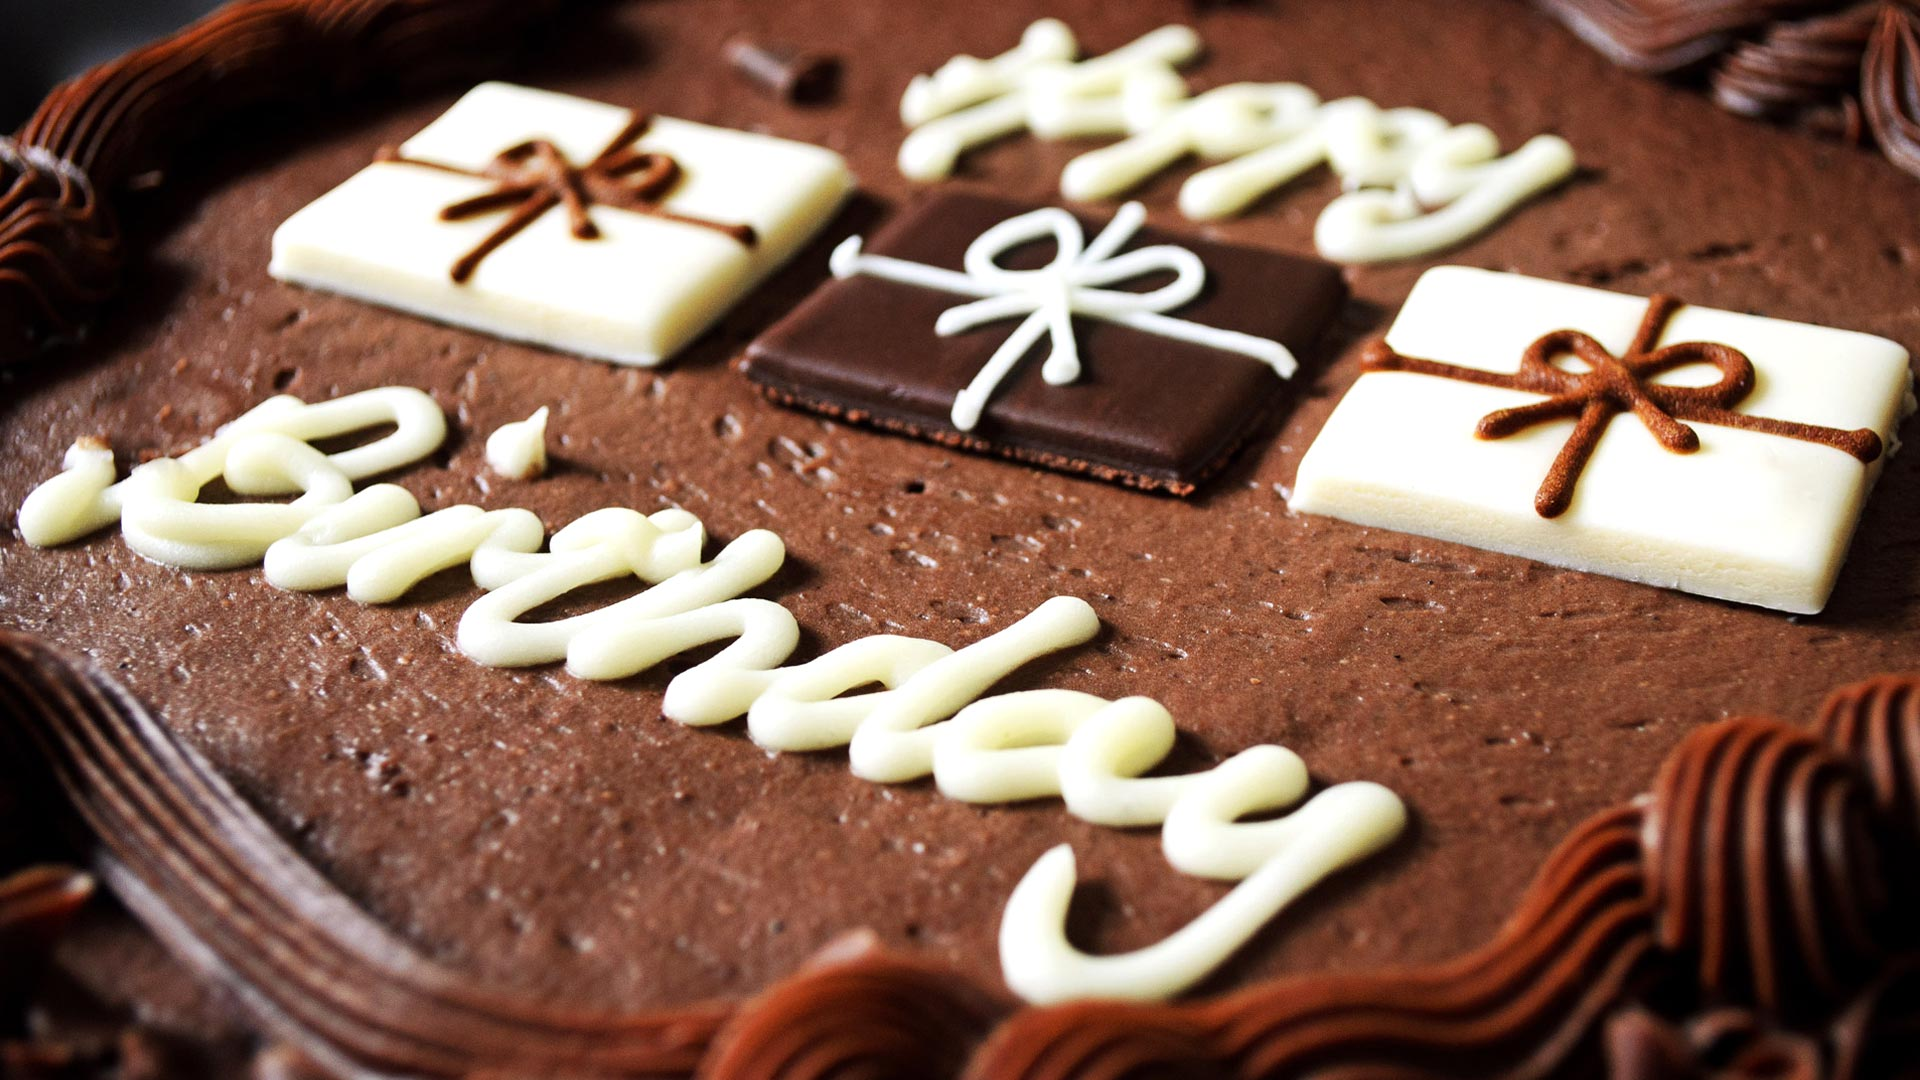 birthday special images hd ; Happy-birthday-chocolate-cake-wallpaper-HD-desktop